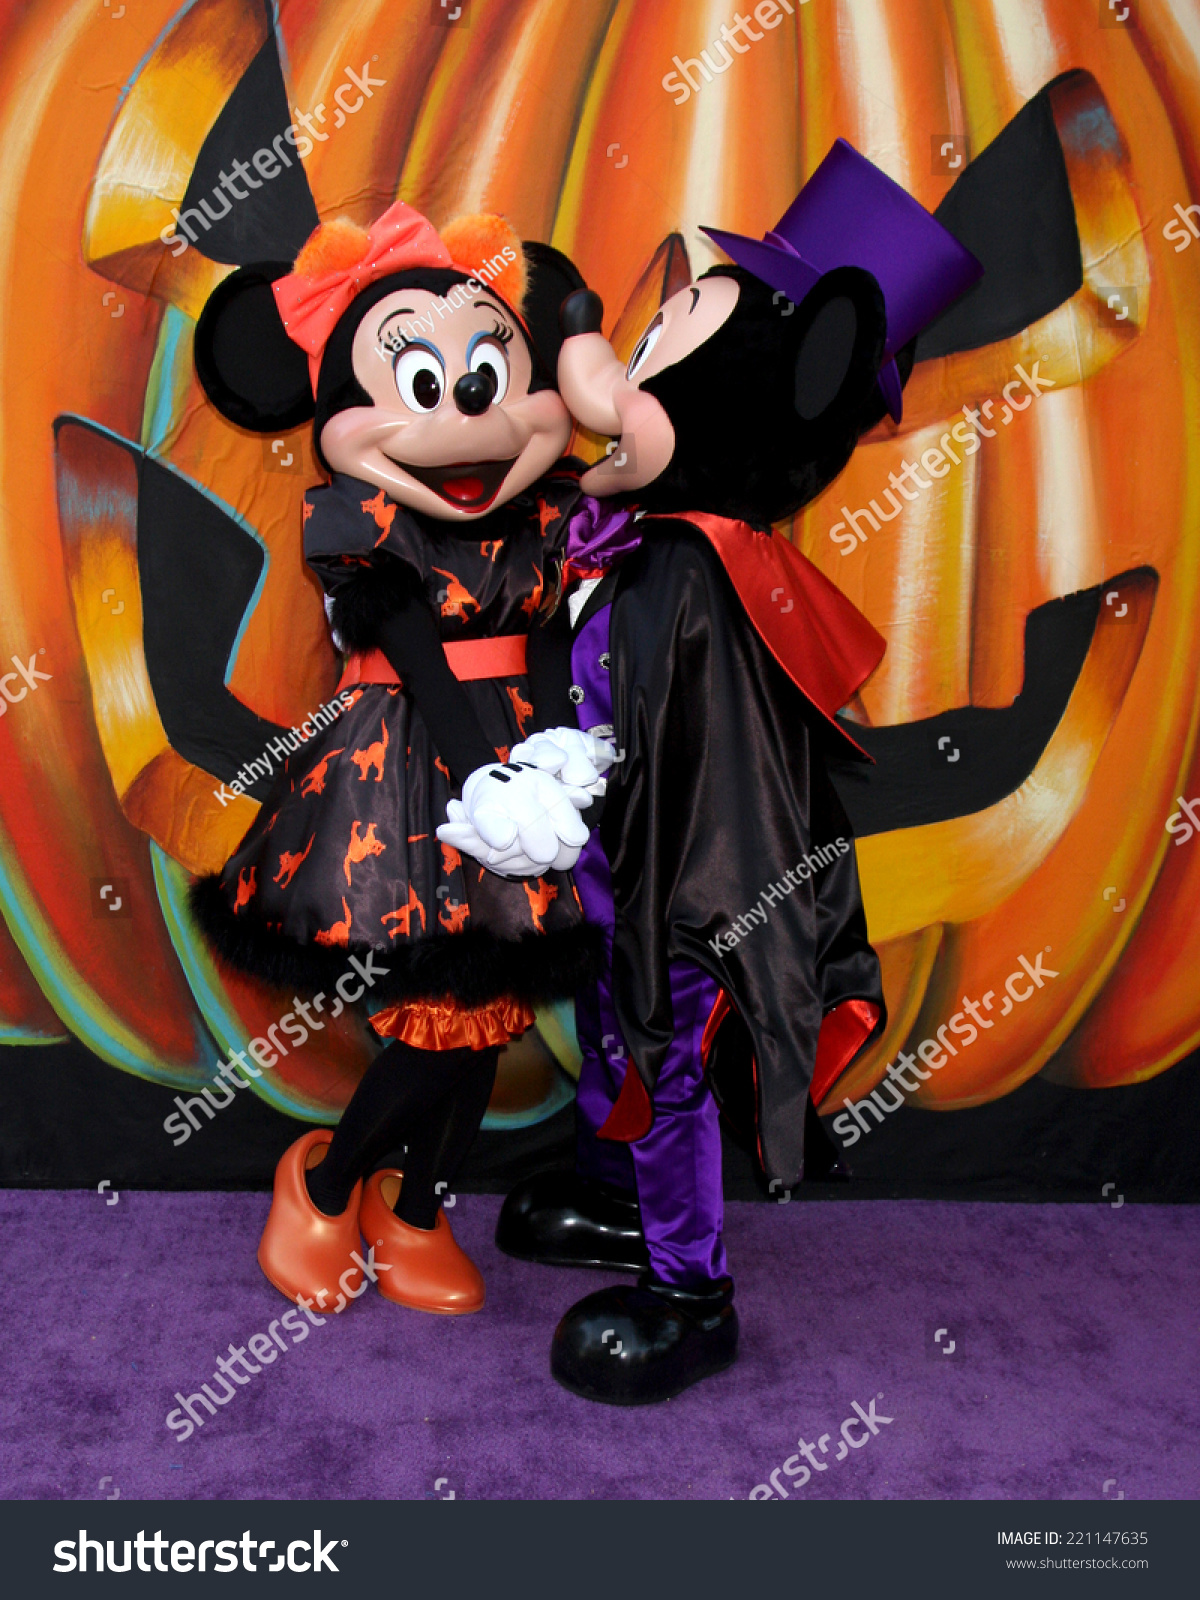 los angeles oct 1 minnie mouse stock photo (edit now) 221147635